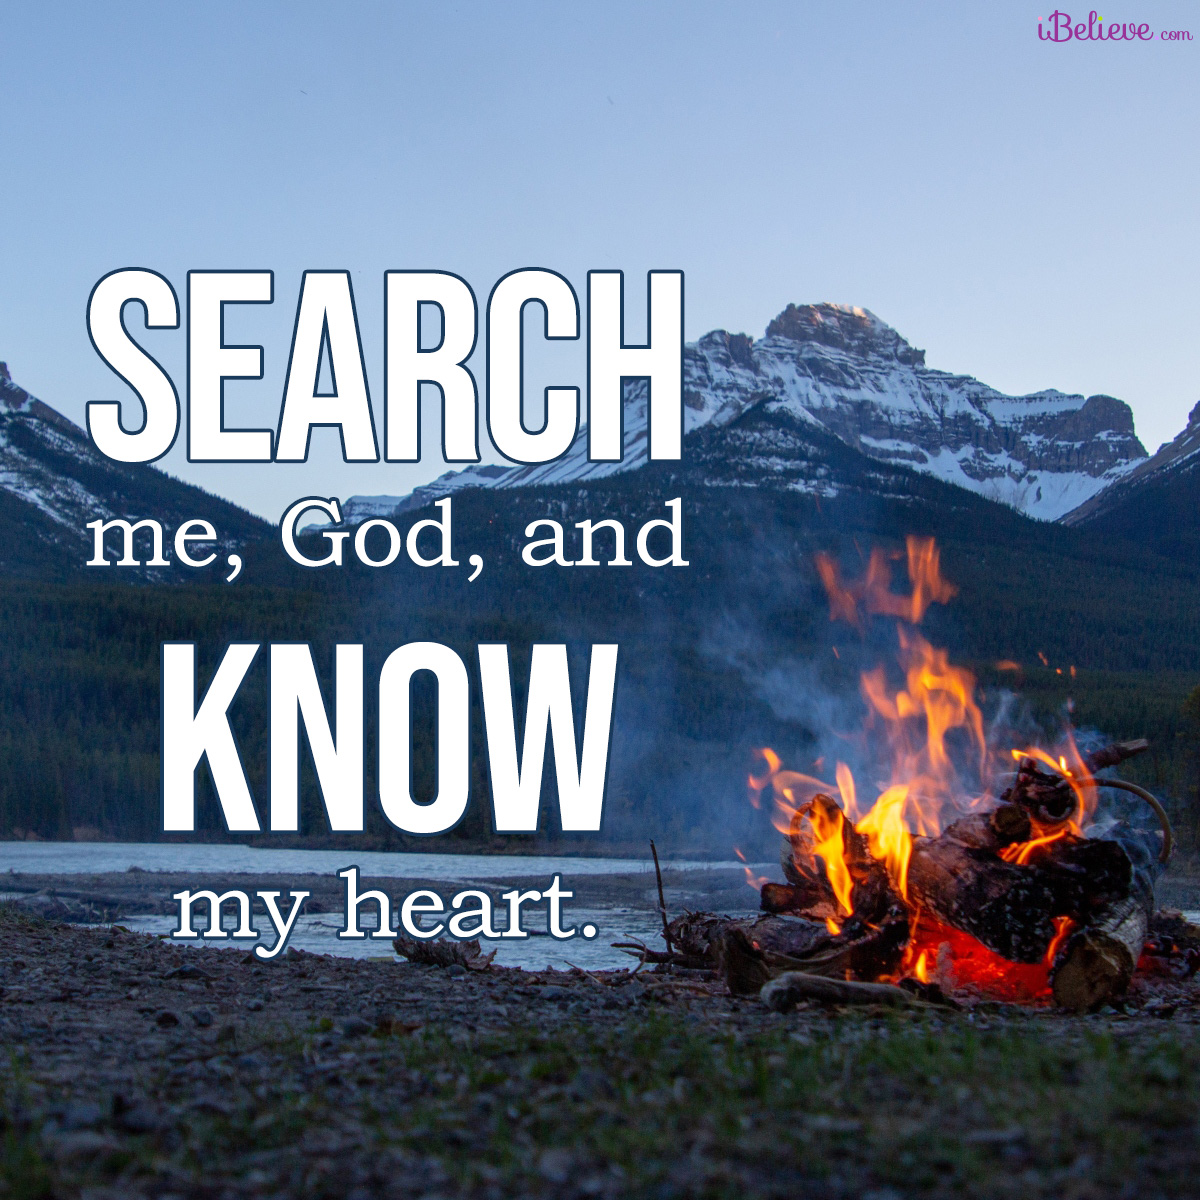 search me and know me, inspirational image